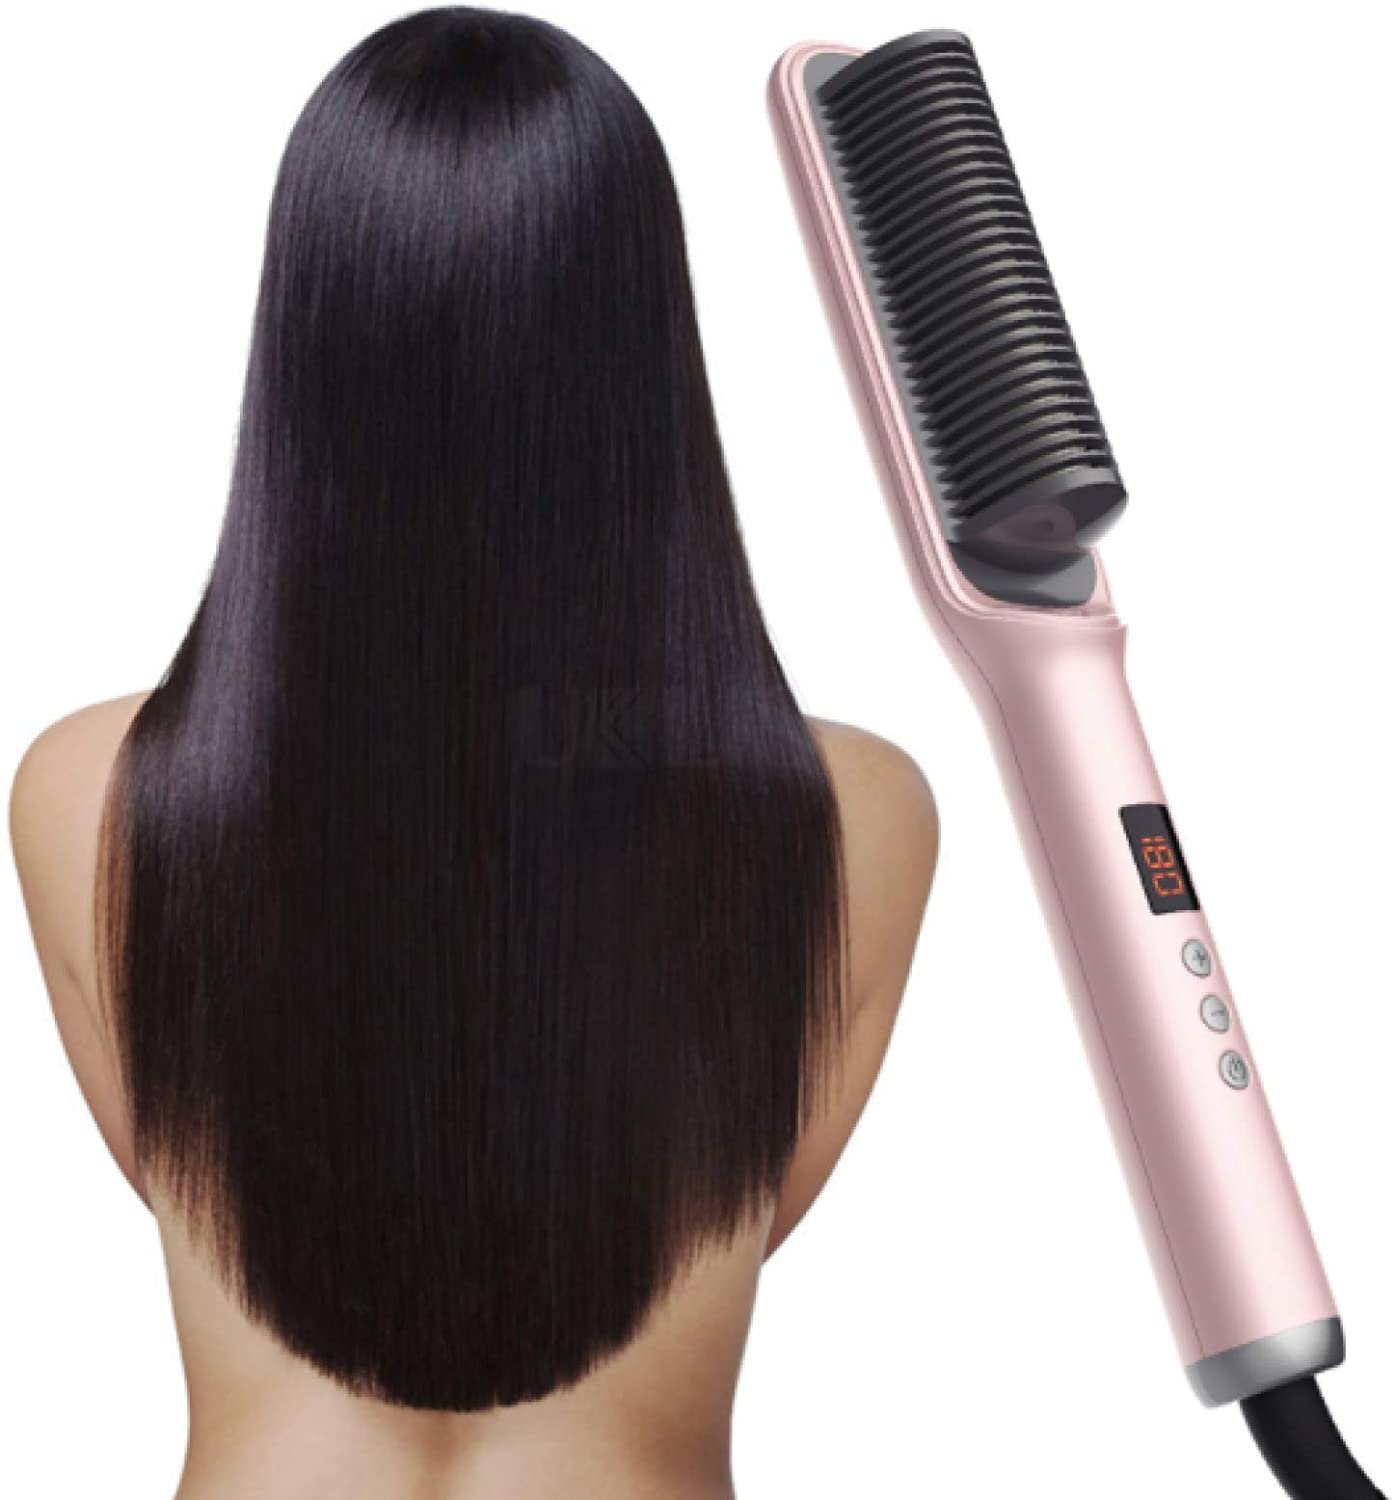 Home ceramic hair straightener for curling and straightening, Ceramic hair straightening comb,Hair straightener lazy electric curling iron ,not hurt hair negative ion Ceramic hair straightening comb